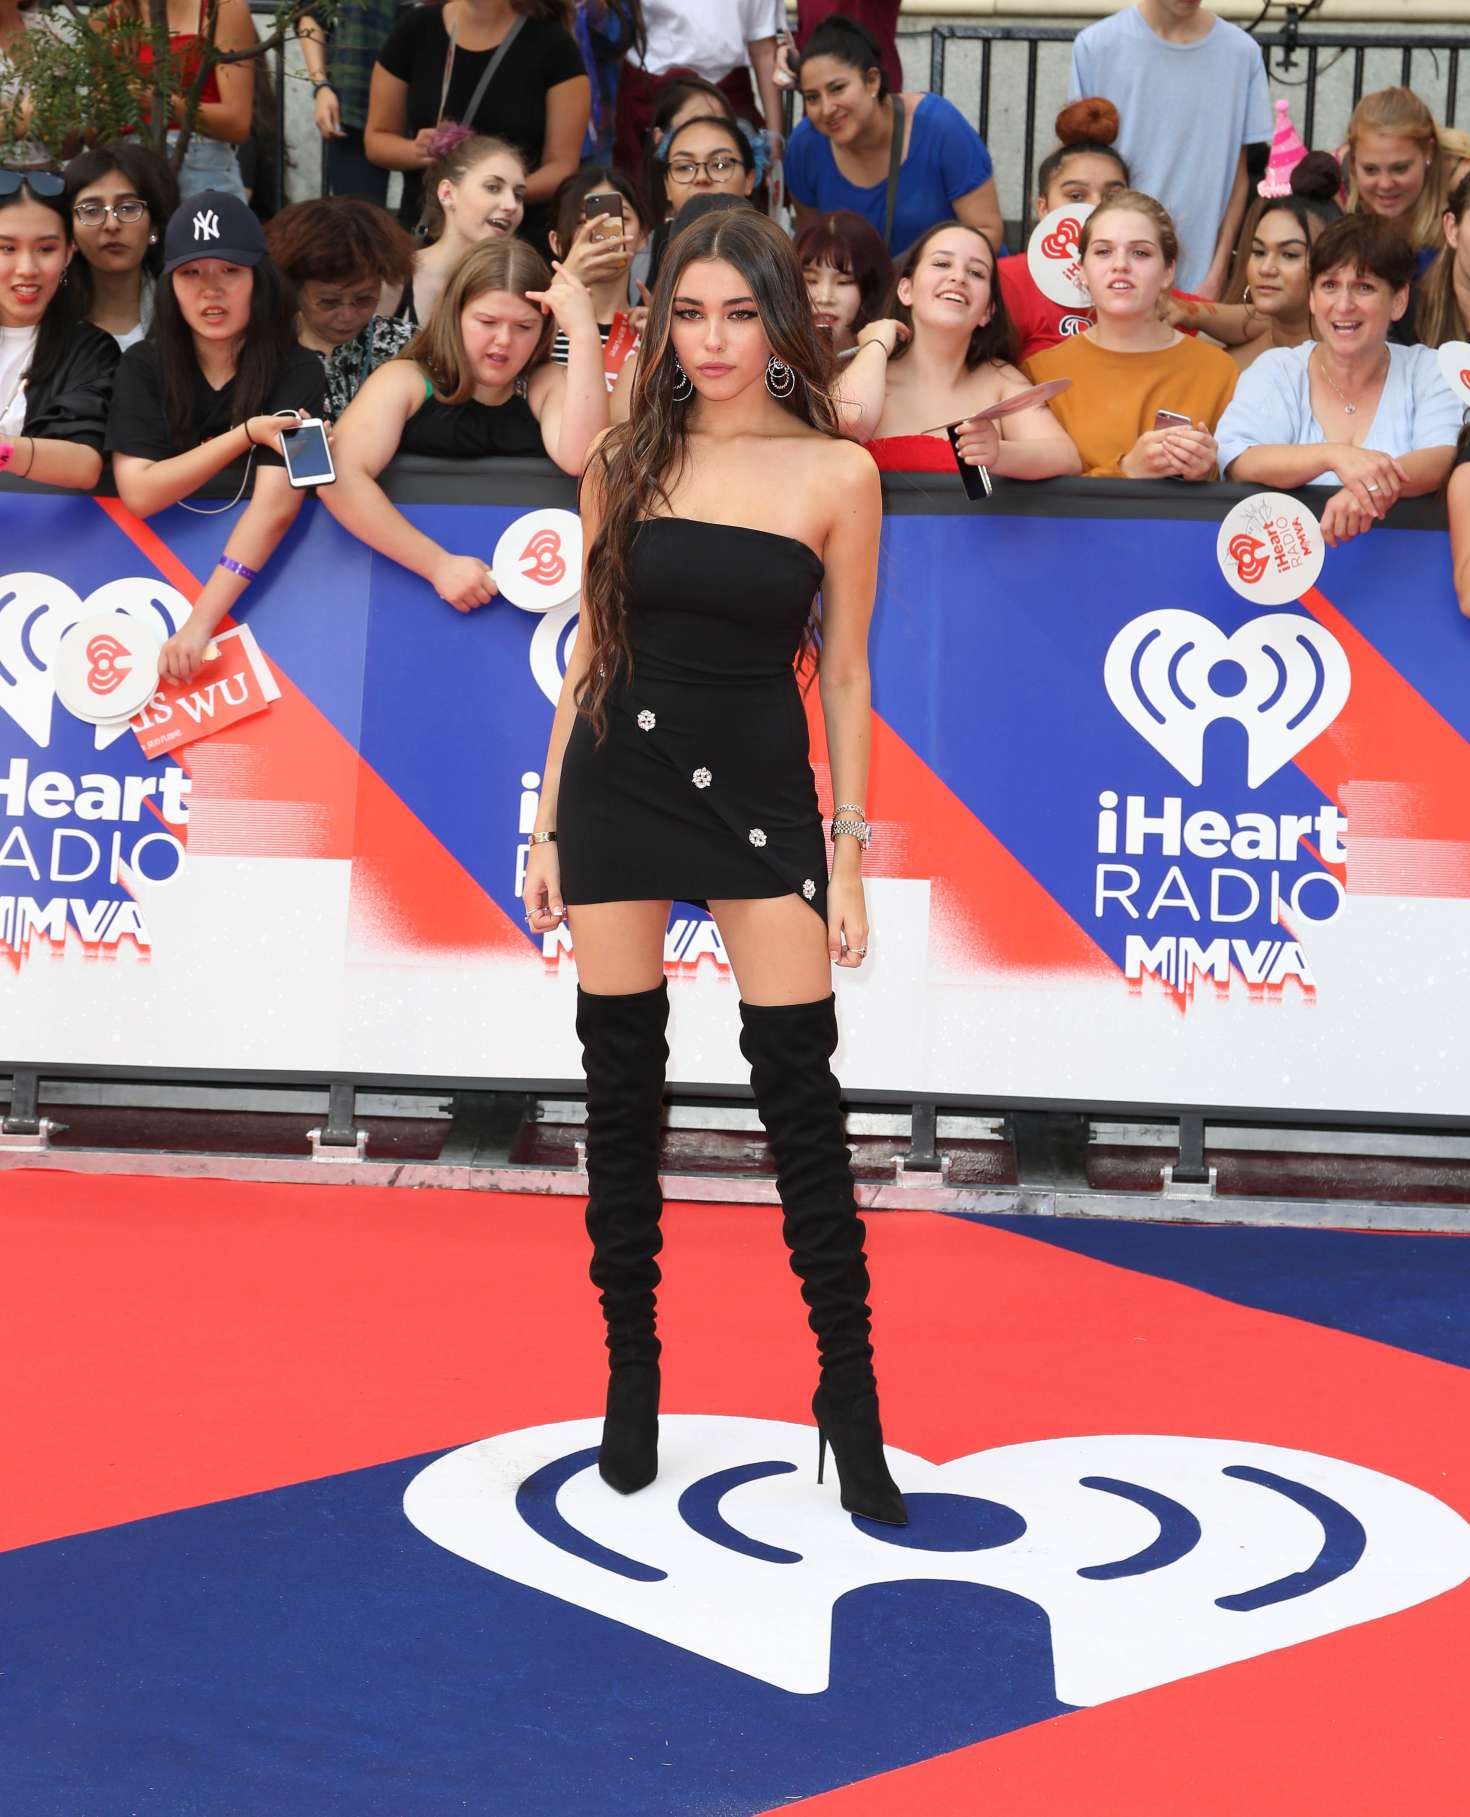 Madison Beer 2018 : Madison Beer: 2018 iHeartRadio Much Music Video Awards -09